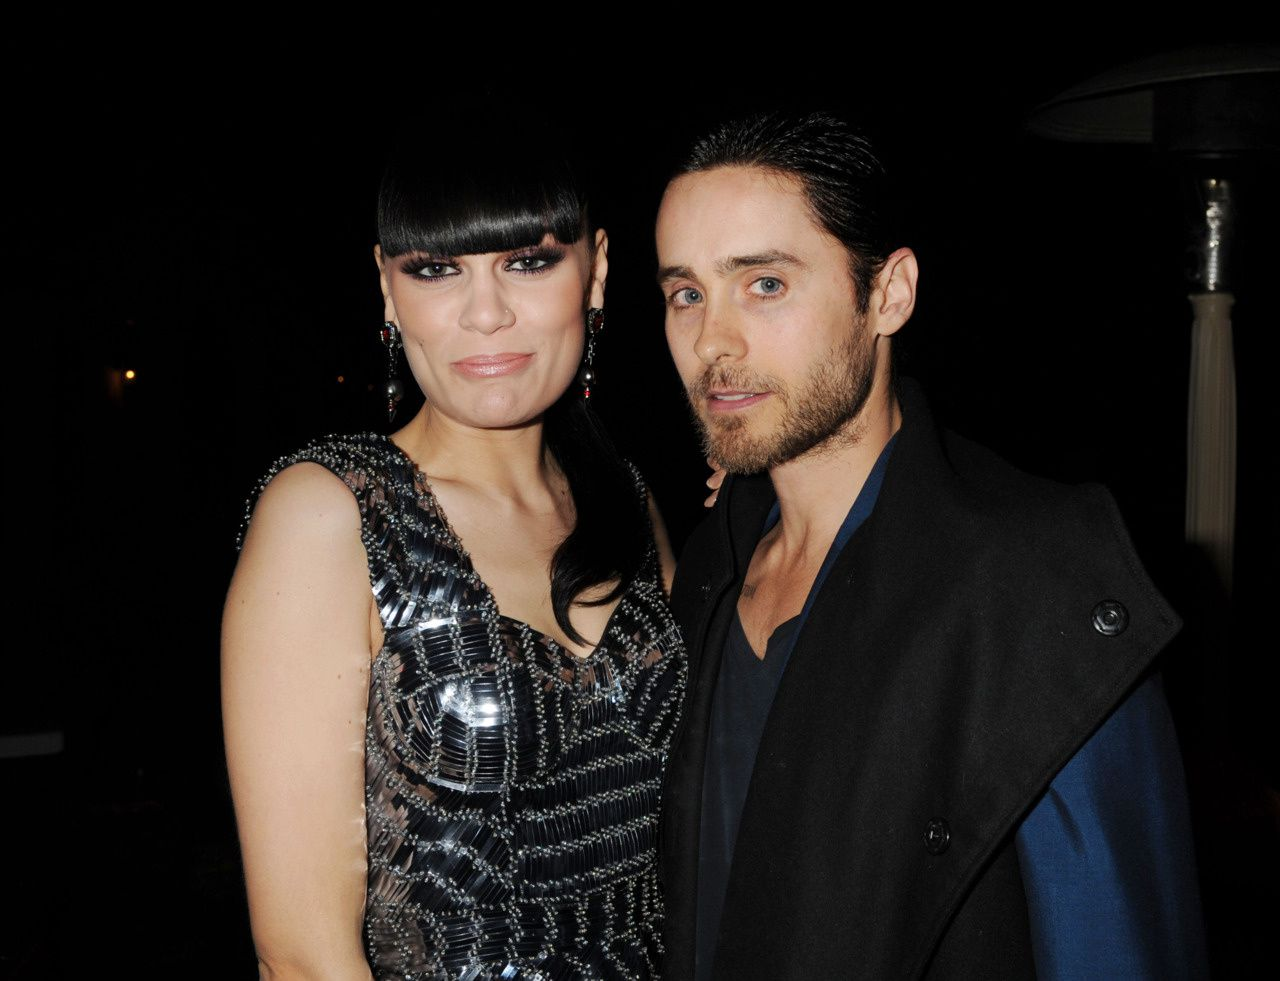 Jared Leto at 54th Grammy Awards Viewing Reception hosted by Lucian Grainge, 12 Février 2012 005